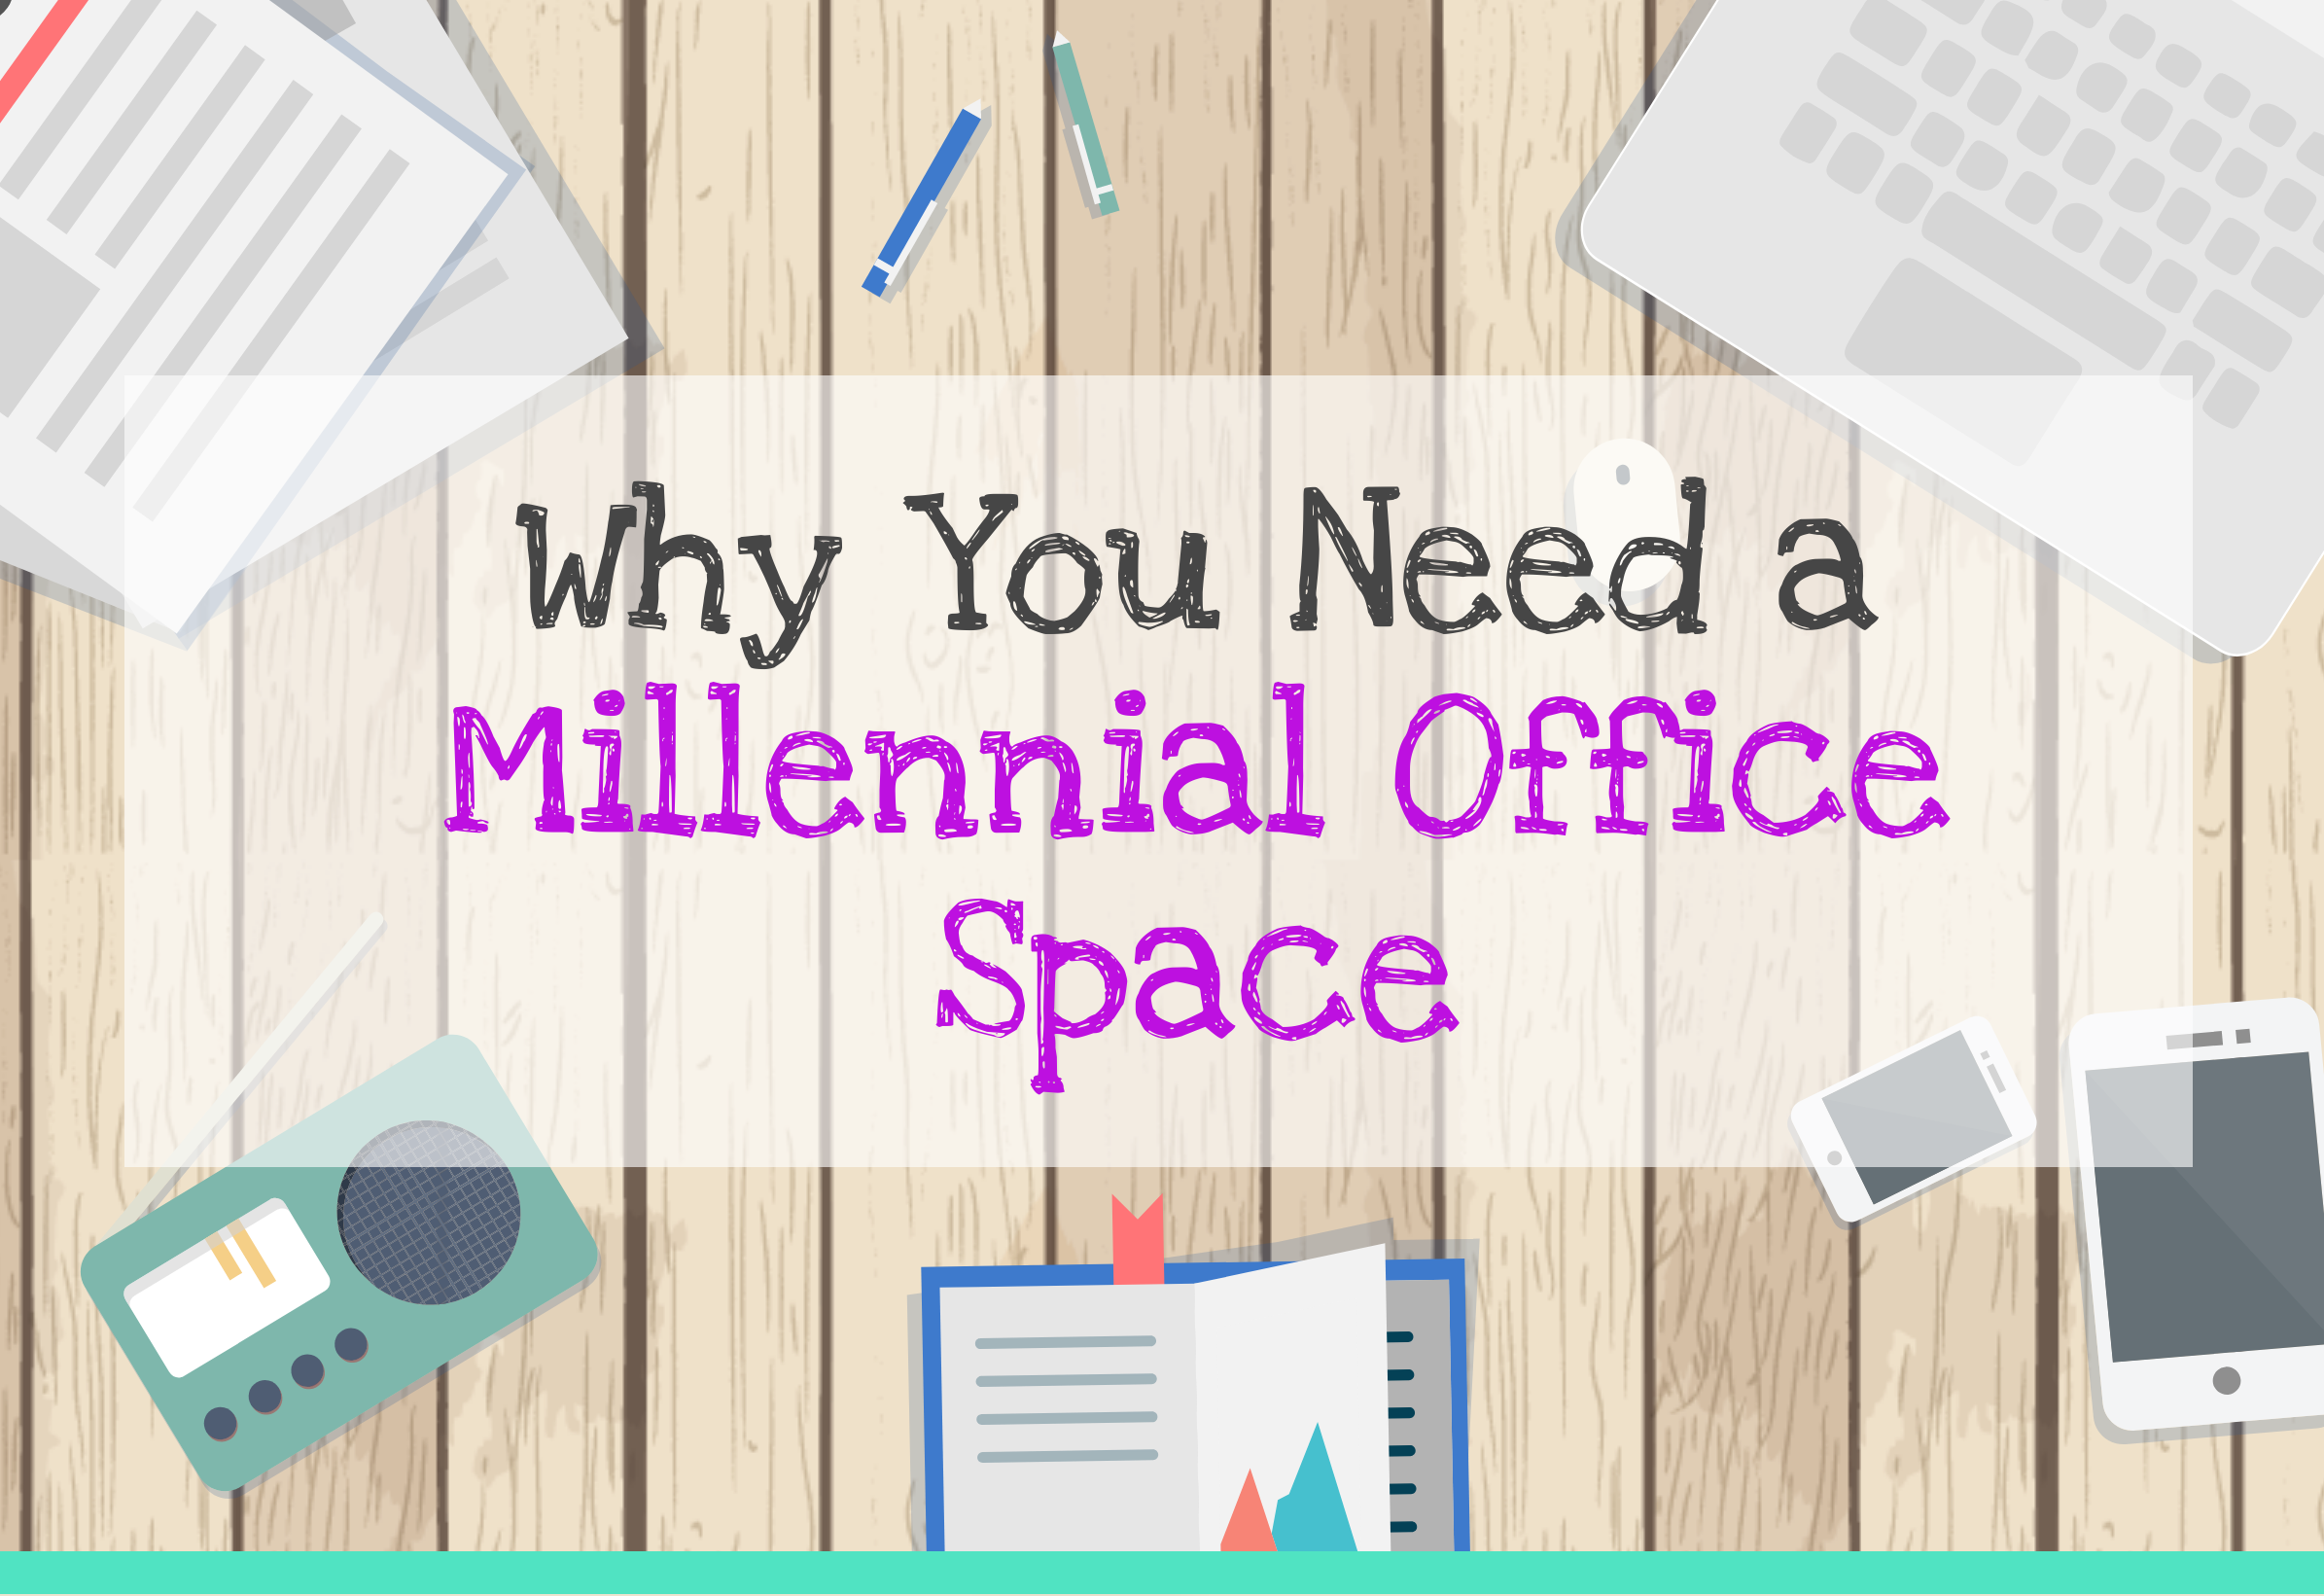 Why You Need a Millennial Office Space